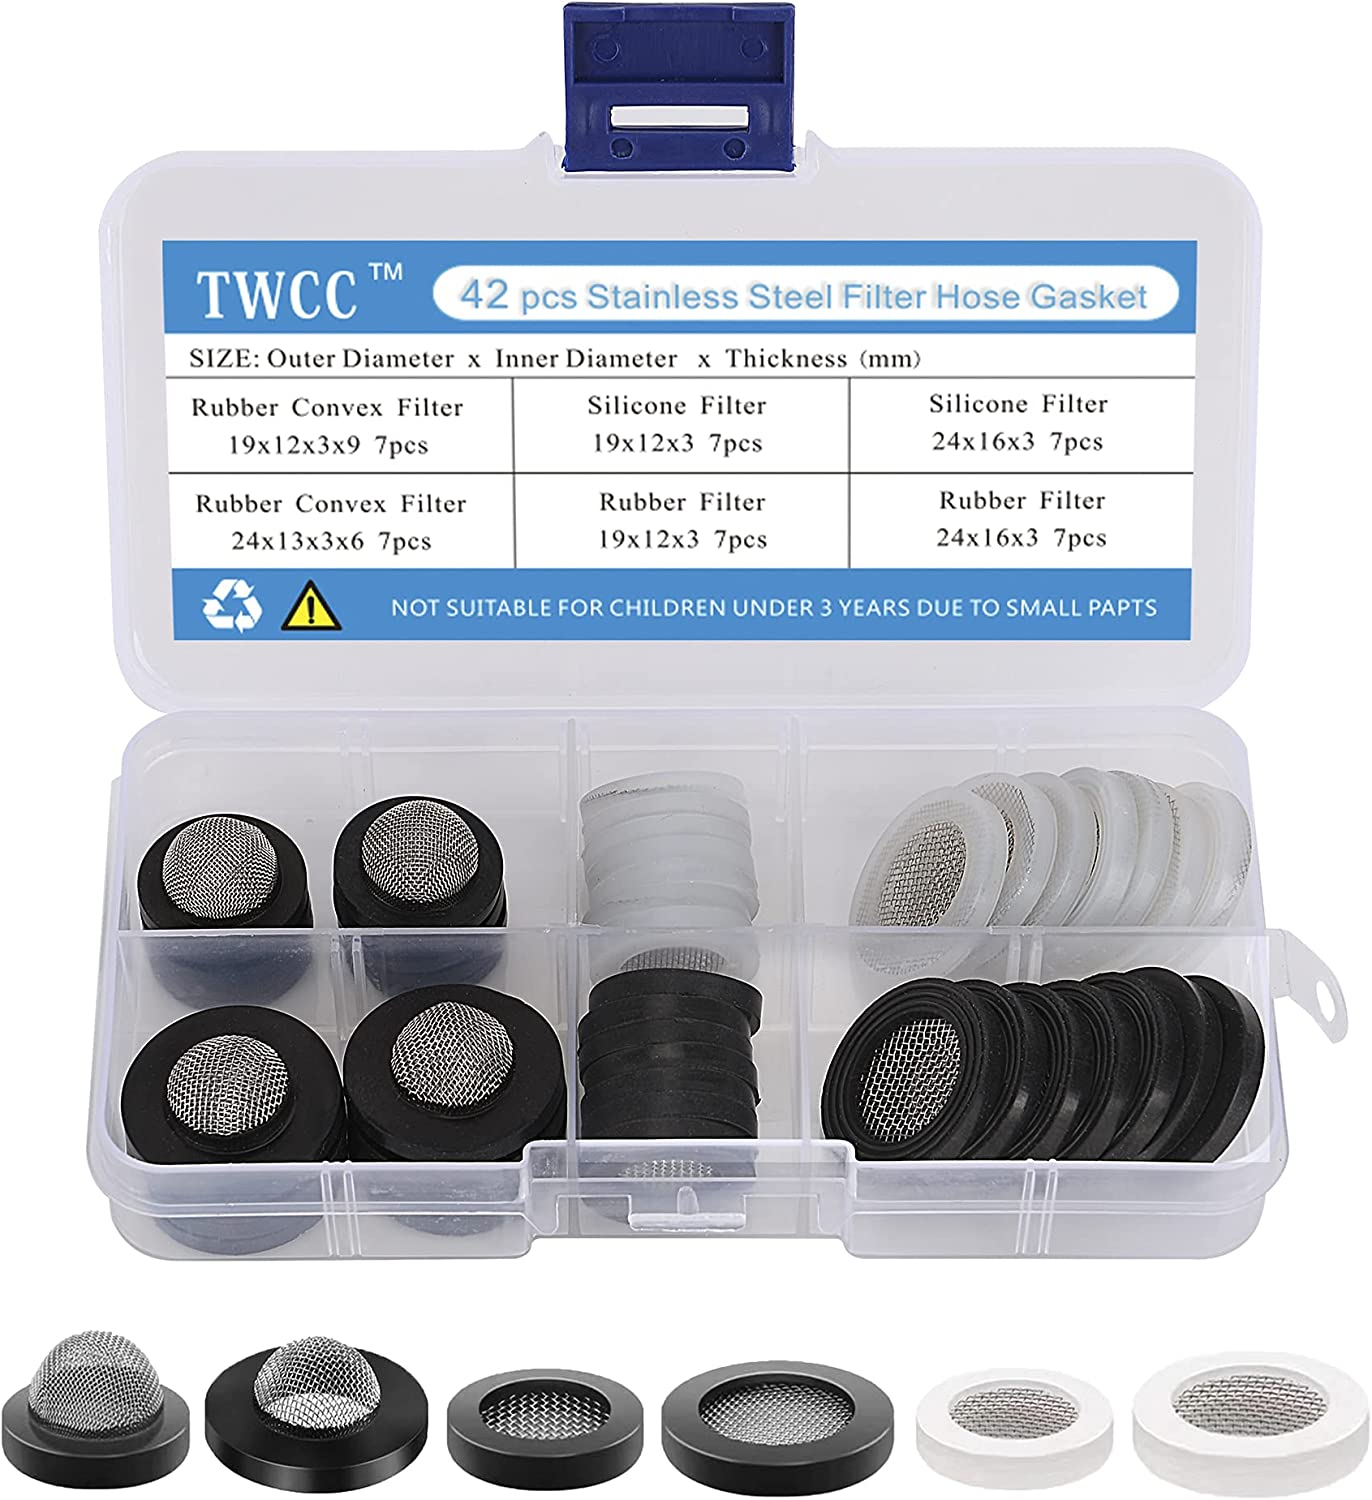 TWCC 42 PCS Stainless Steel Filter Hose Gaskets, Hose Screen Gaskets, for 1/2-inch Shower Heads, 3/4-inch Garden Hoses and Faucet Connectors.